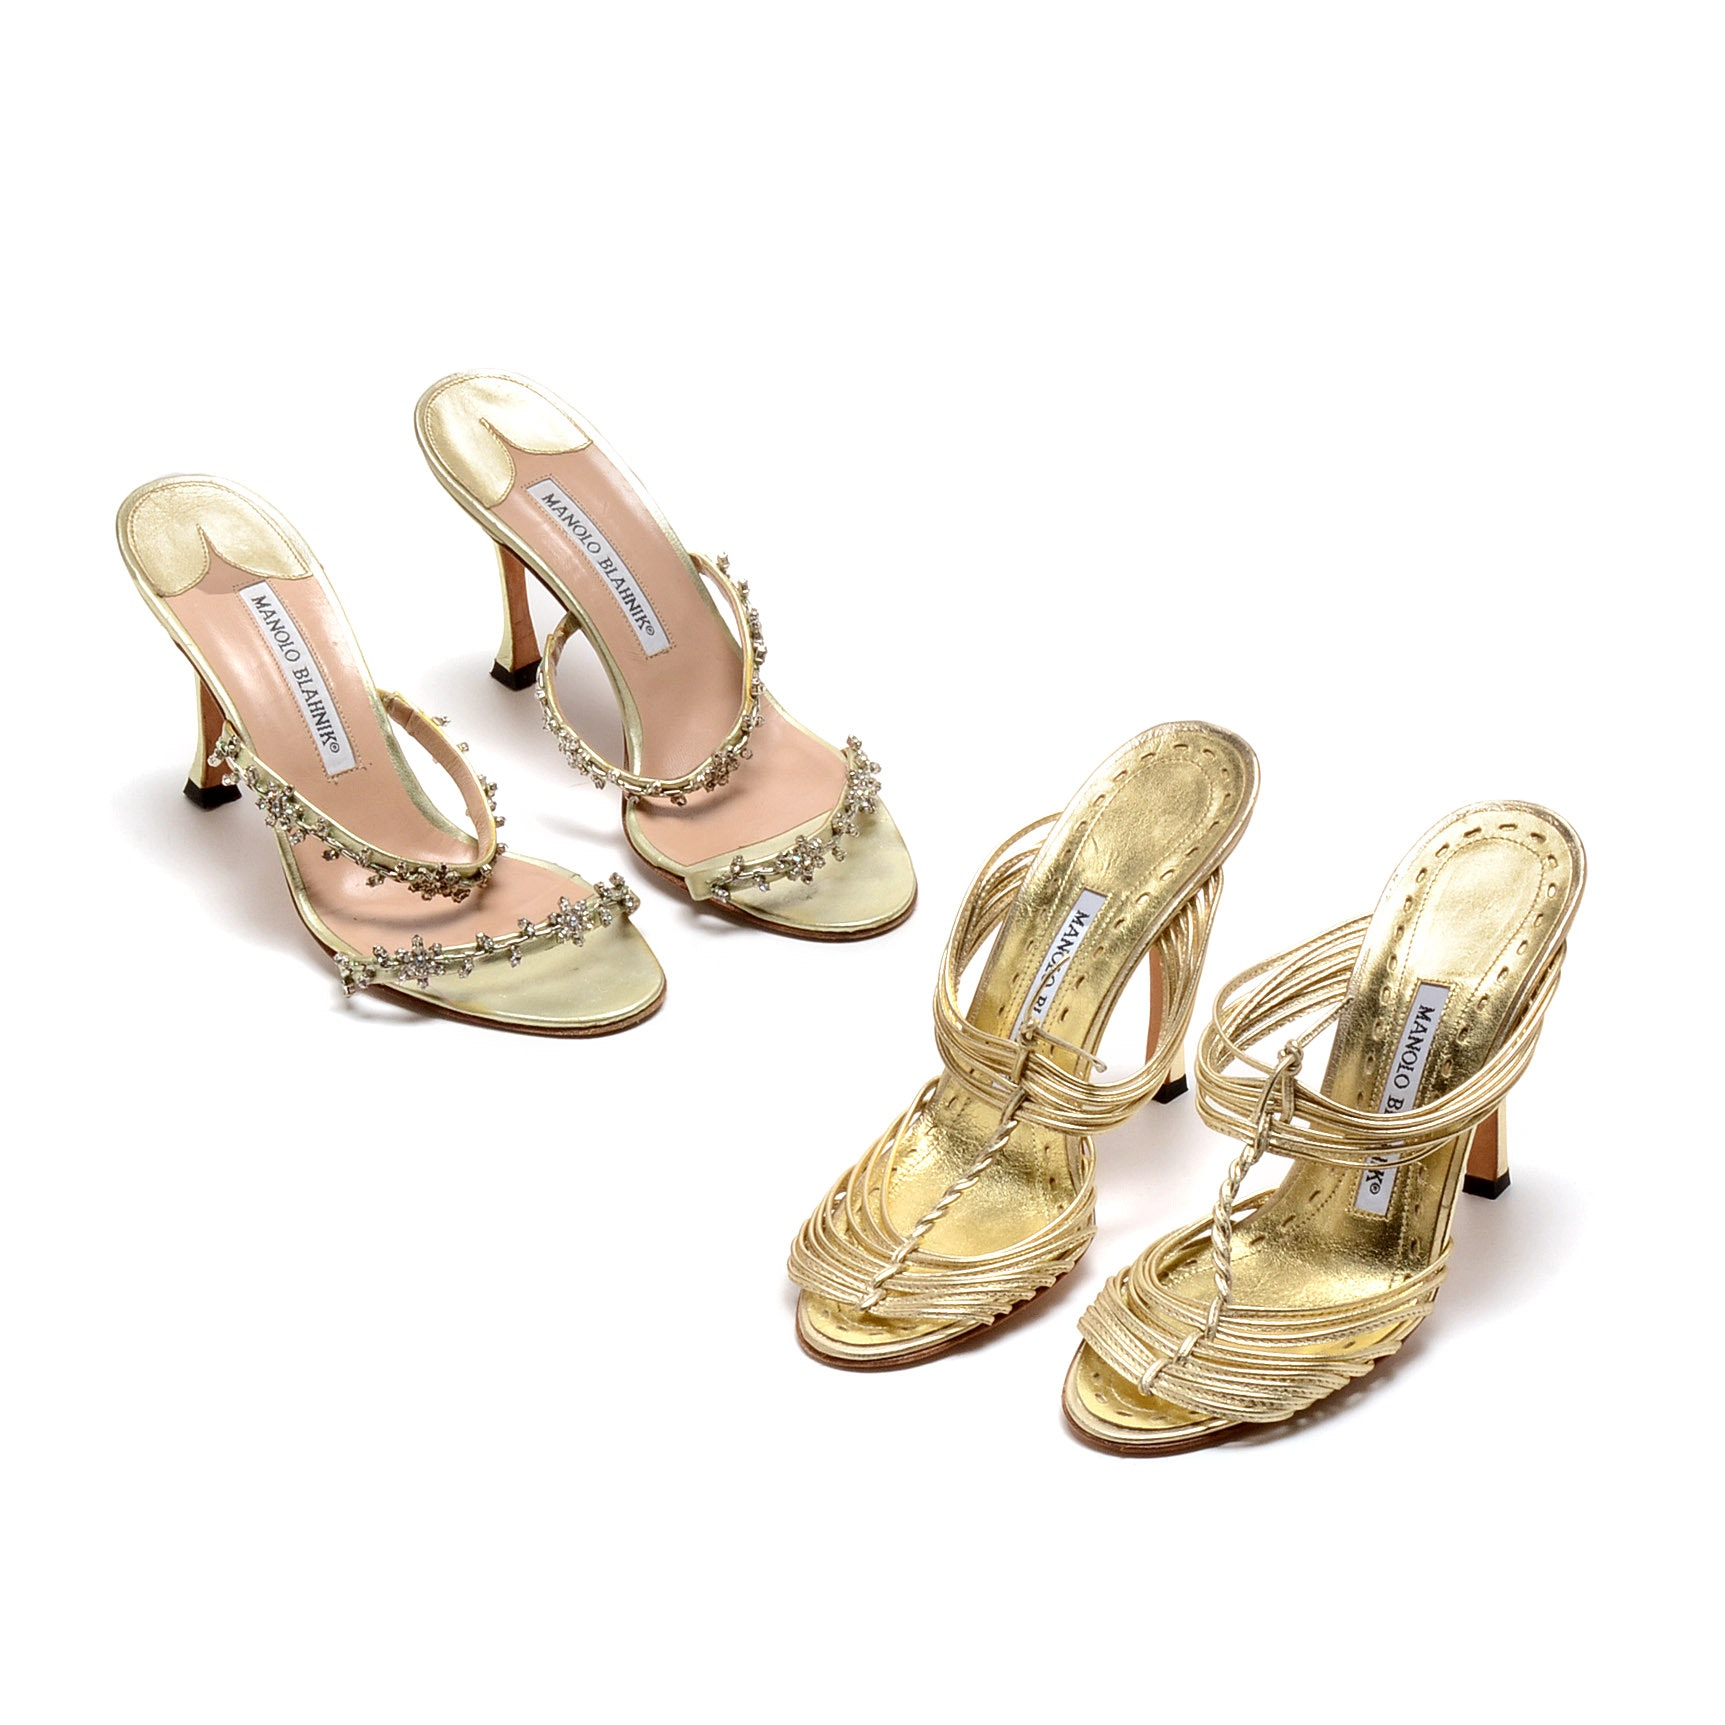 Two Pair of Manolo Blahnik Gold Metallic Strappy Dress Sandals